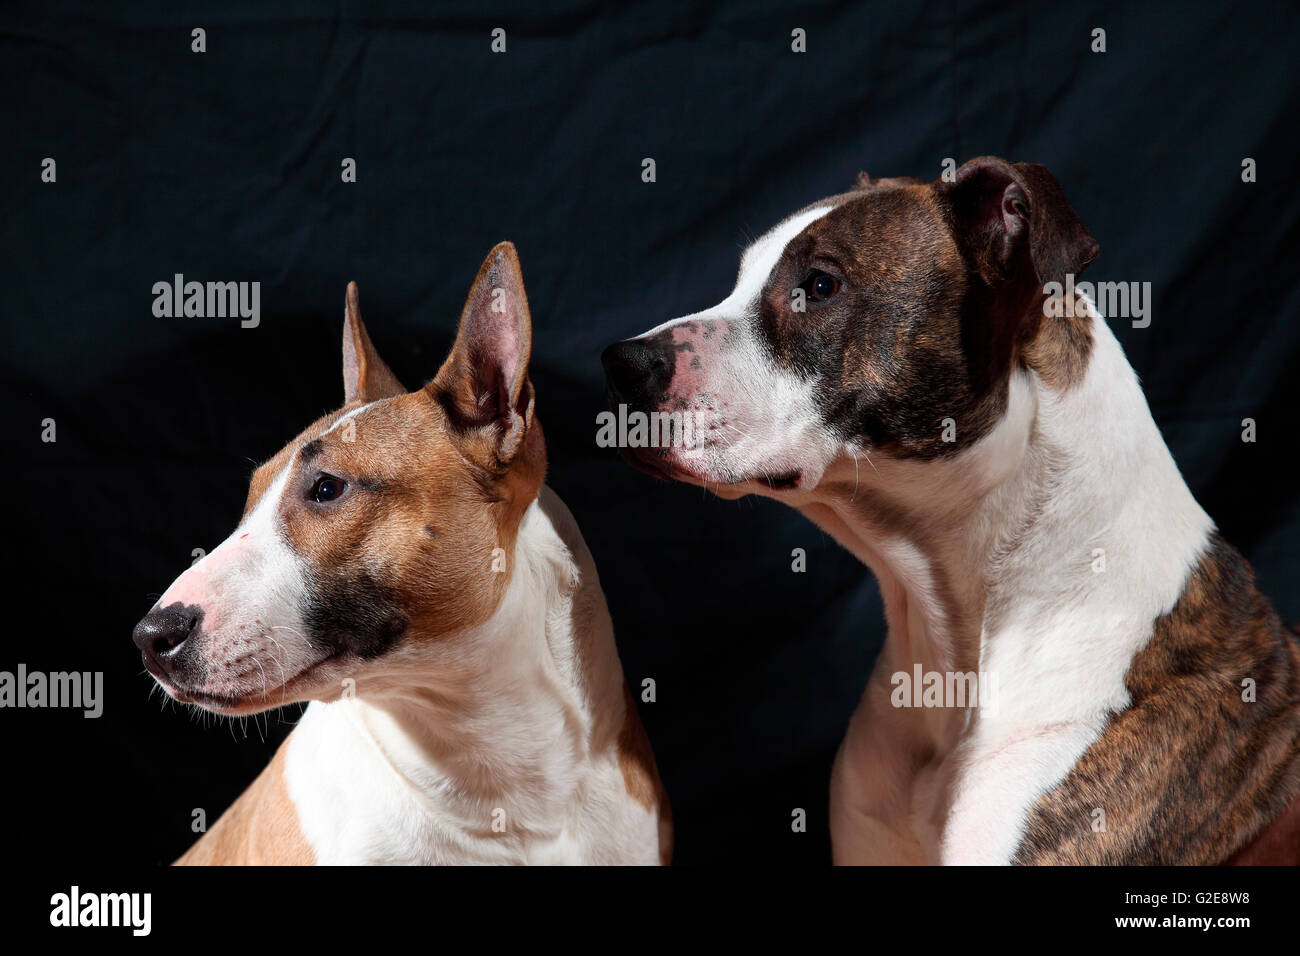 American Staffordshire and Bull Terrier Dogs - Stock Image